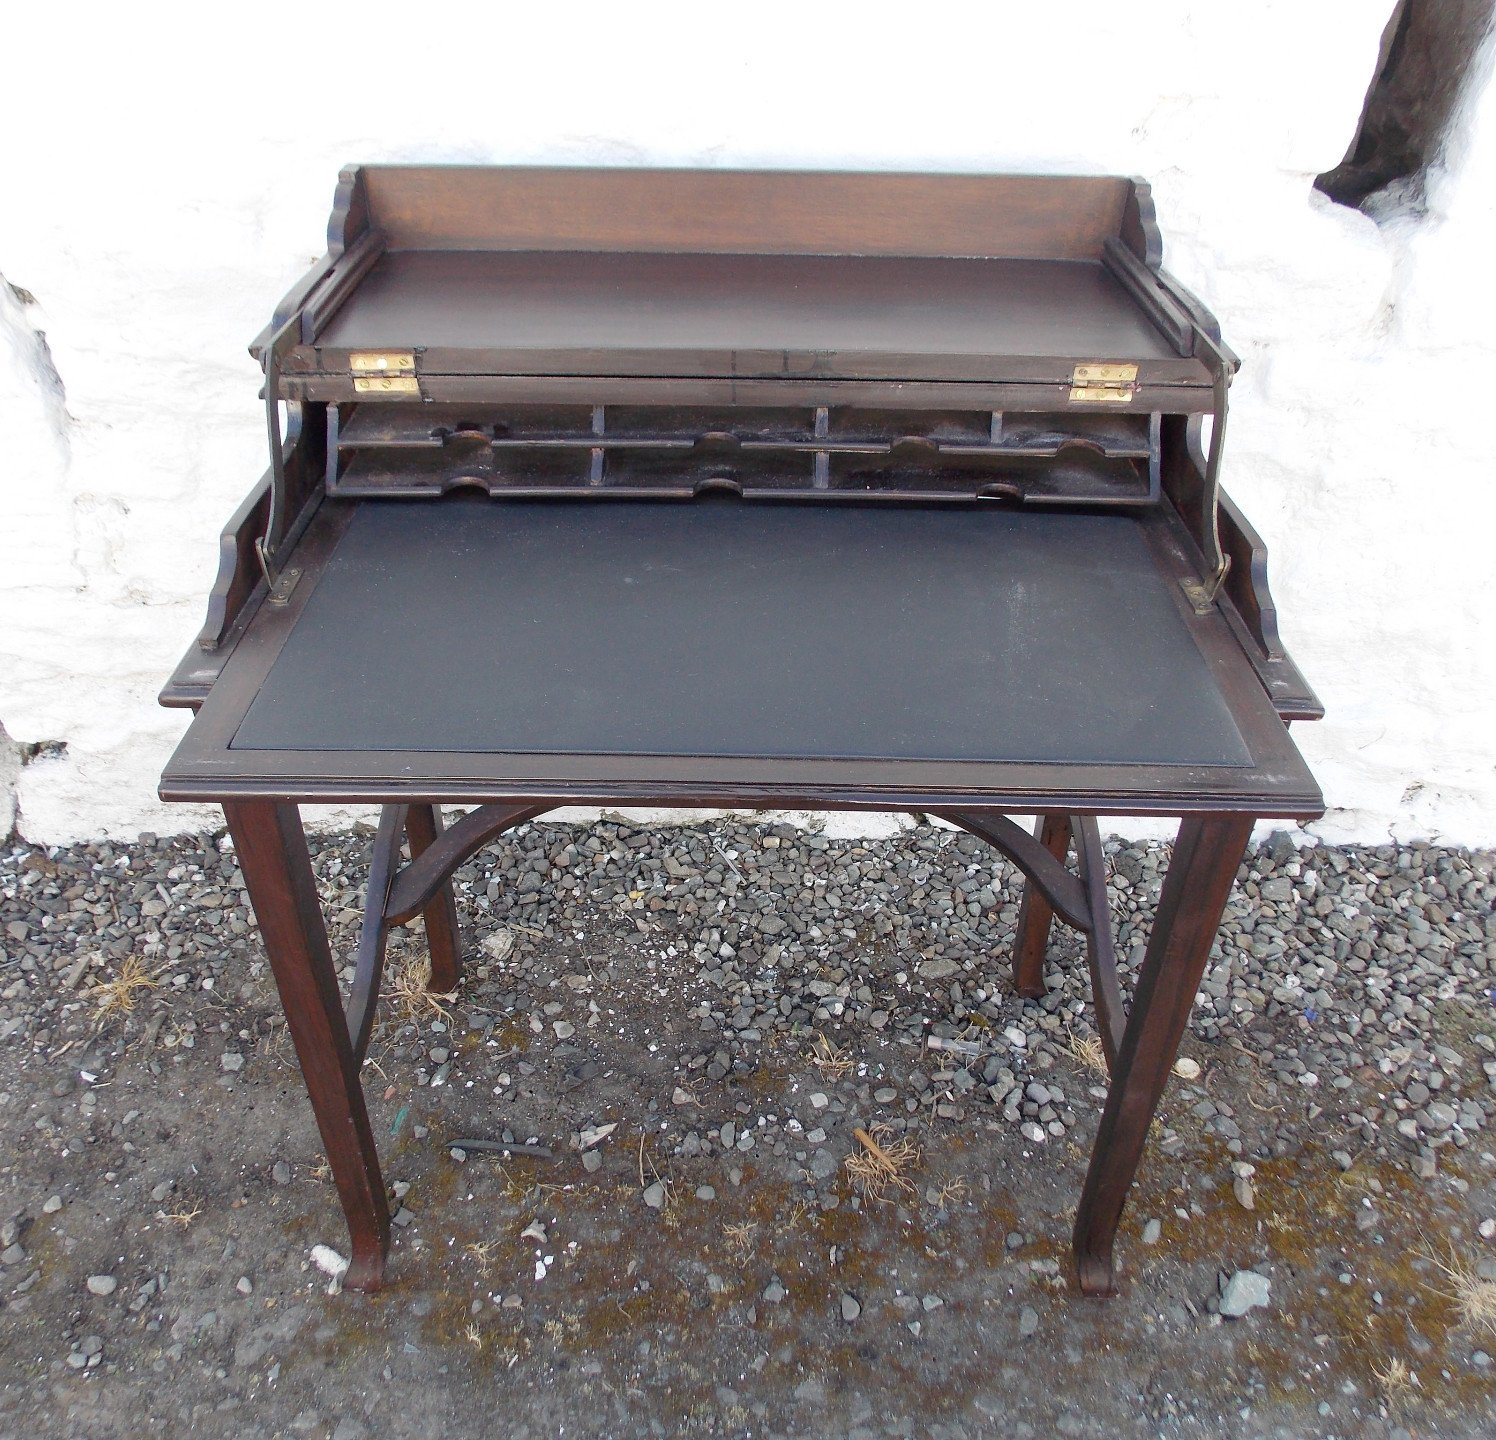 Edwardian Mahogany Folding Top Desk